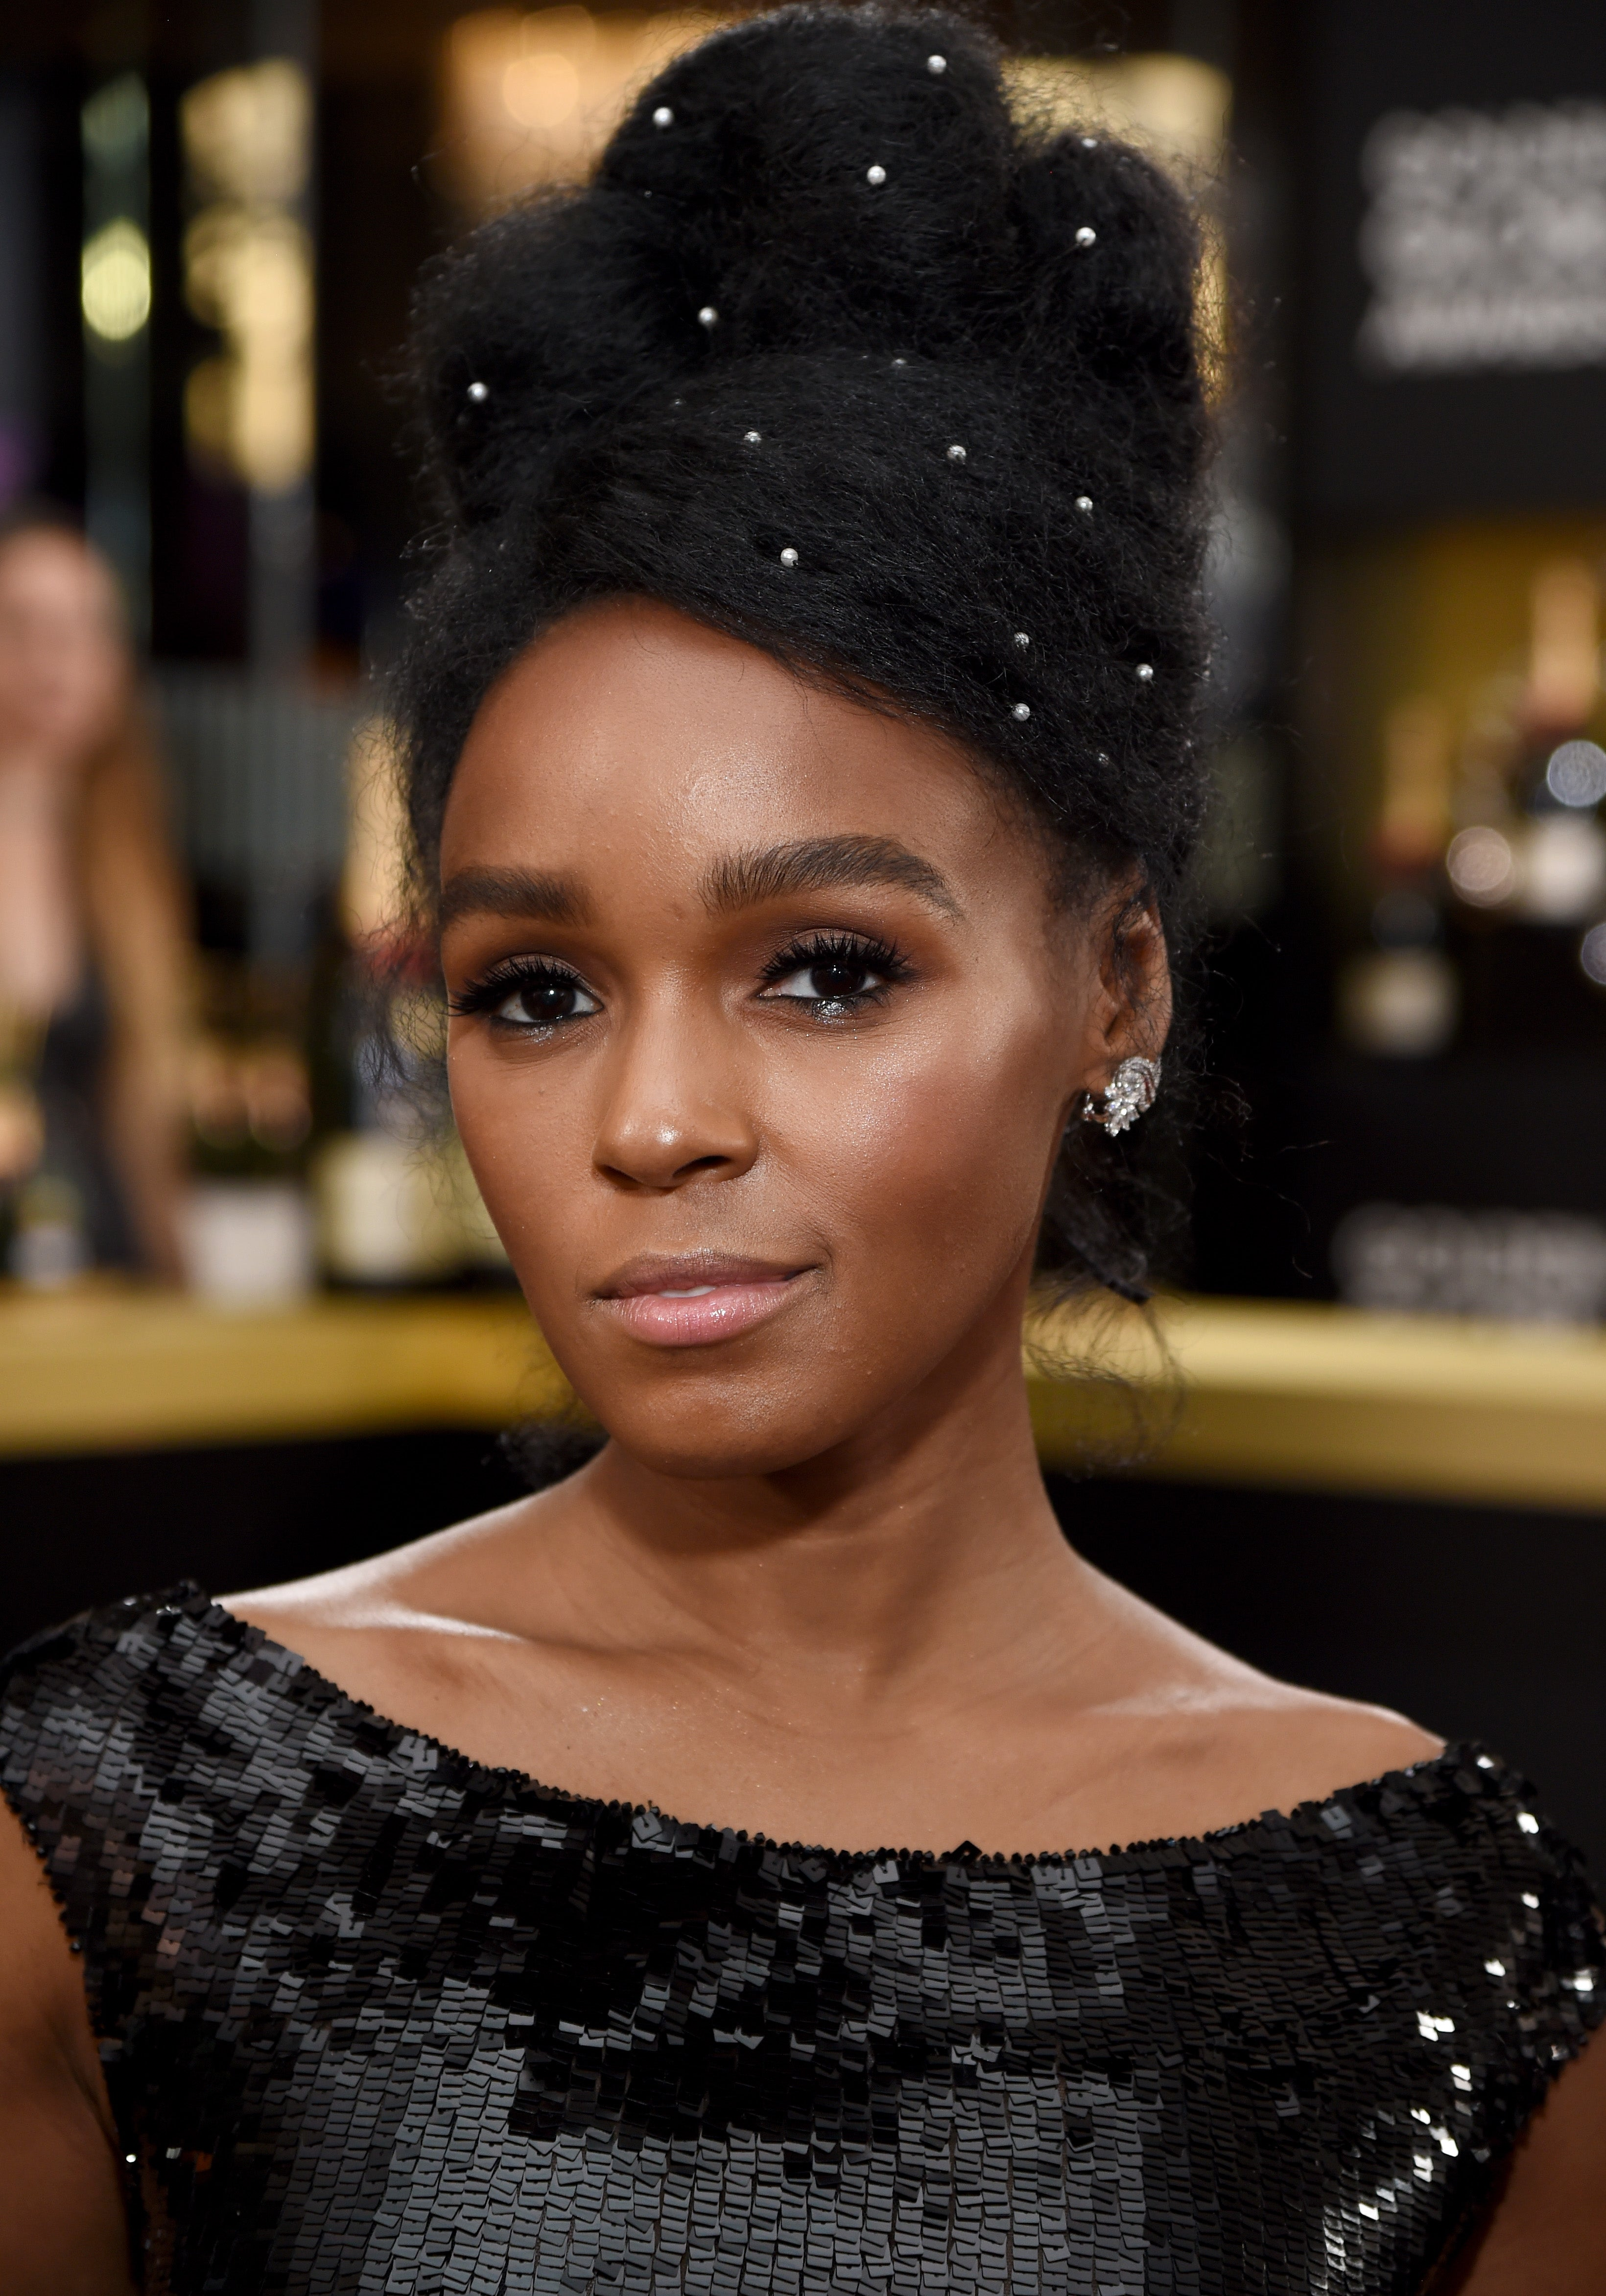 Janelle Monáe's Golden Globes Makeup Look Is Courtesy Of This Drugstore Brand